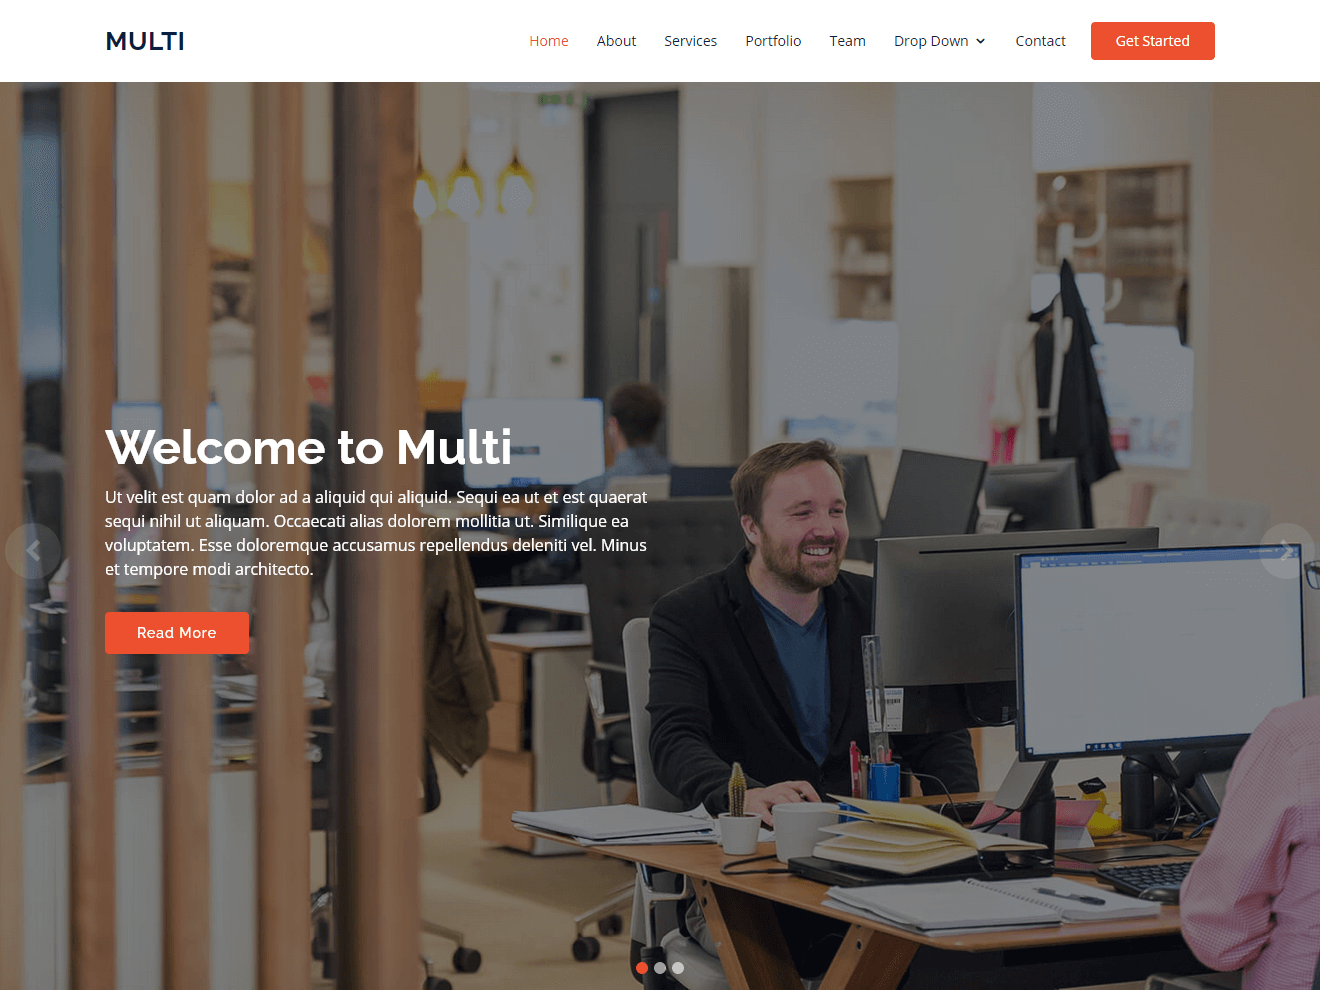 Multi – Responsive Bootstrap Template Theme Demo